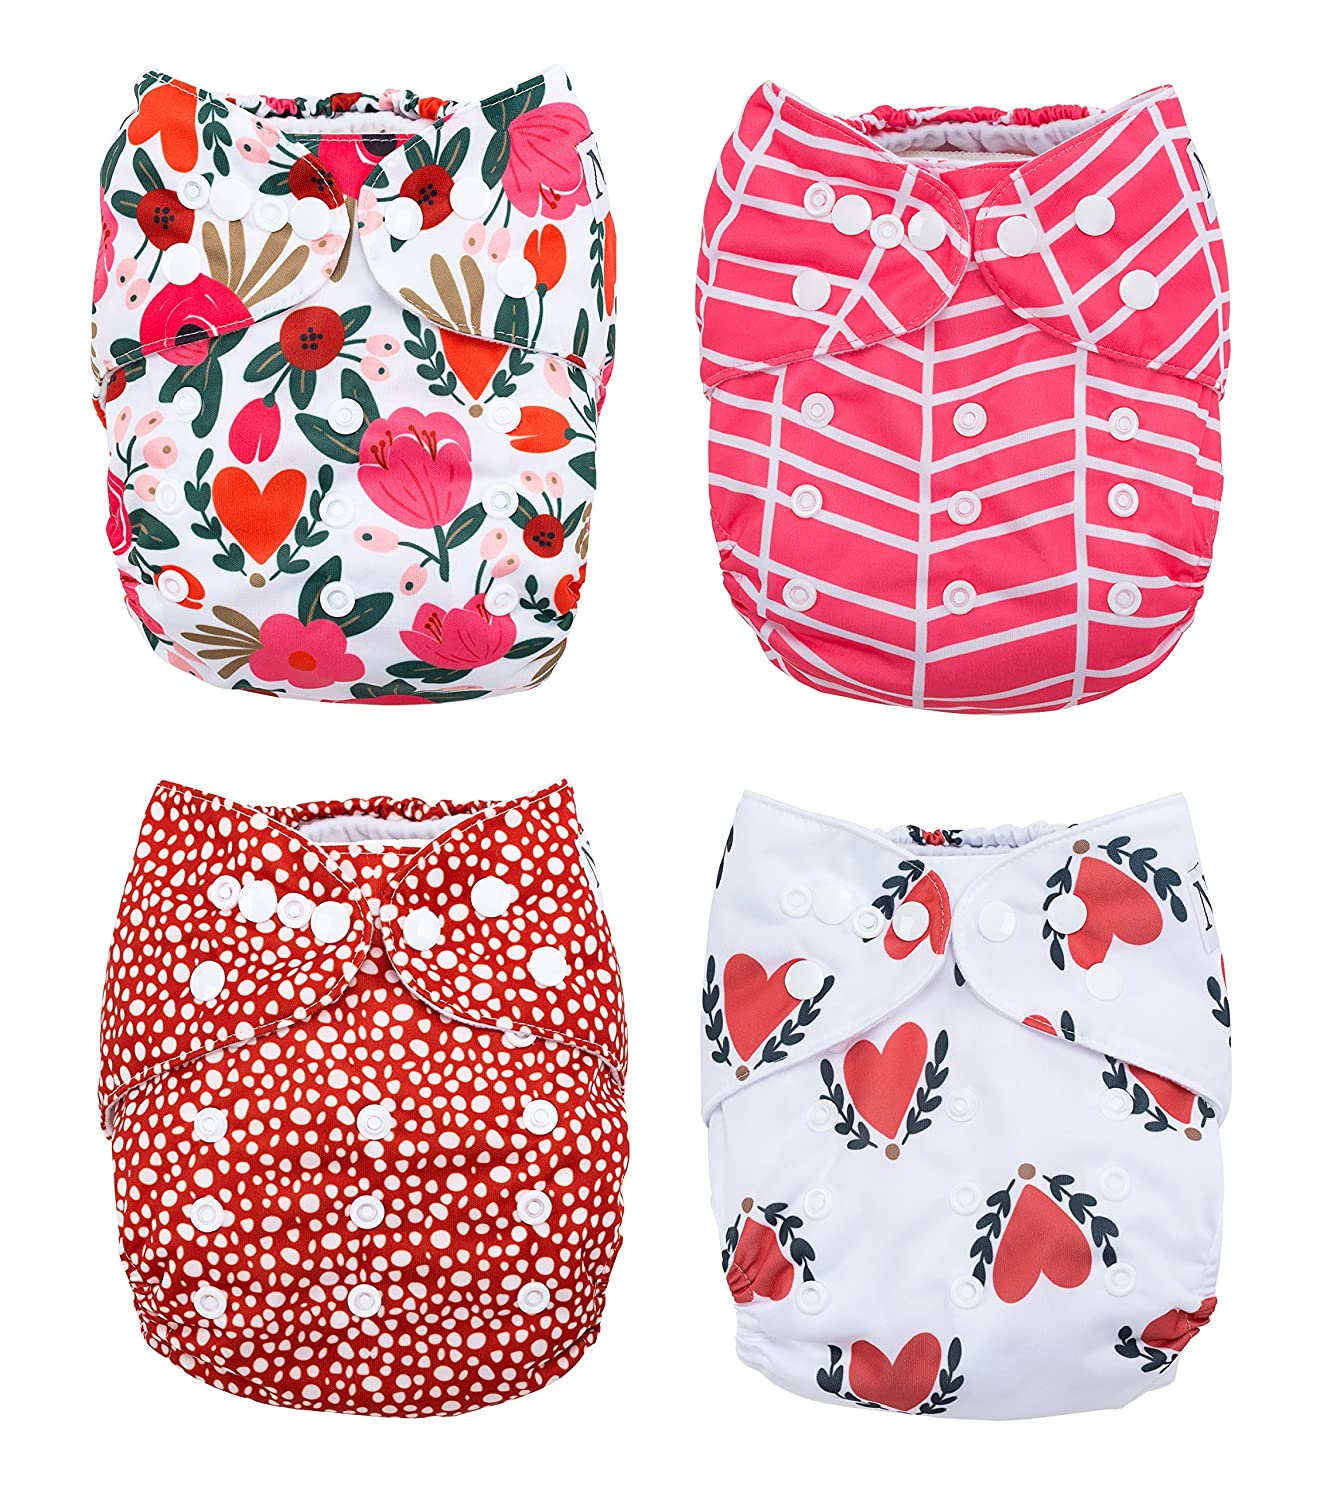 Top 10 Cloth Diapers